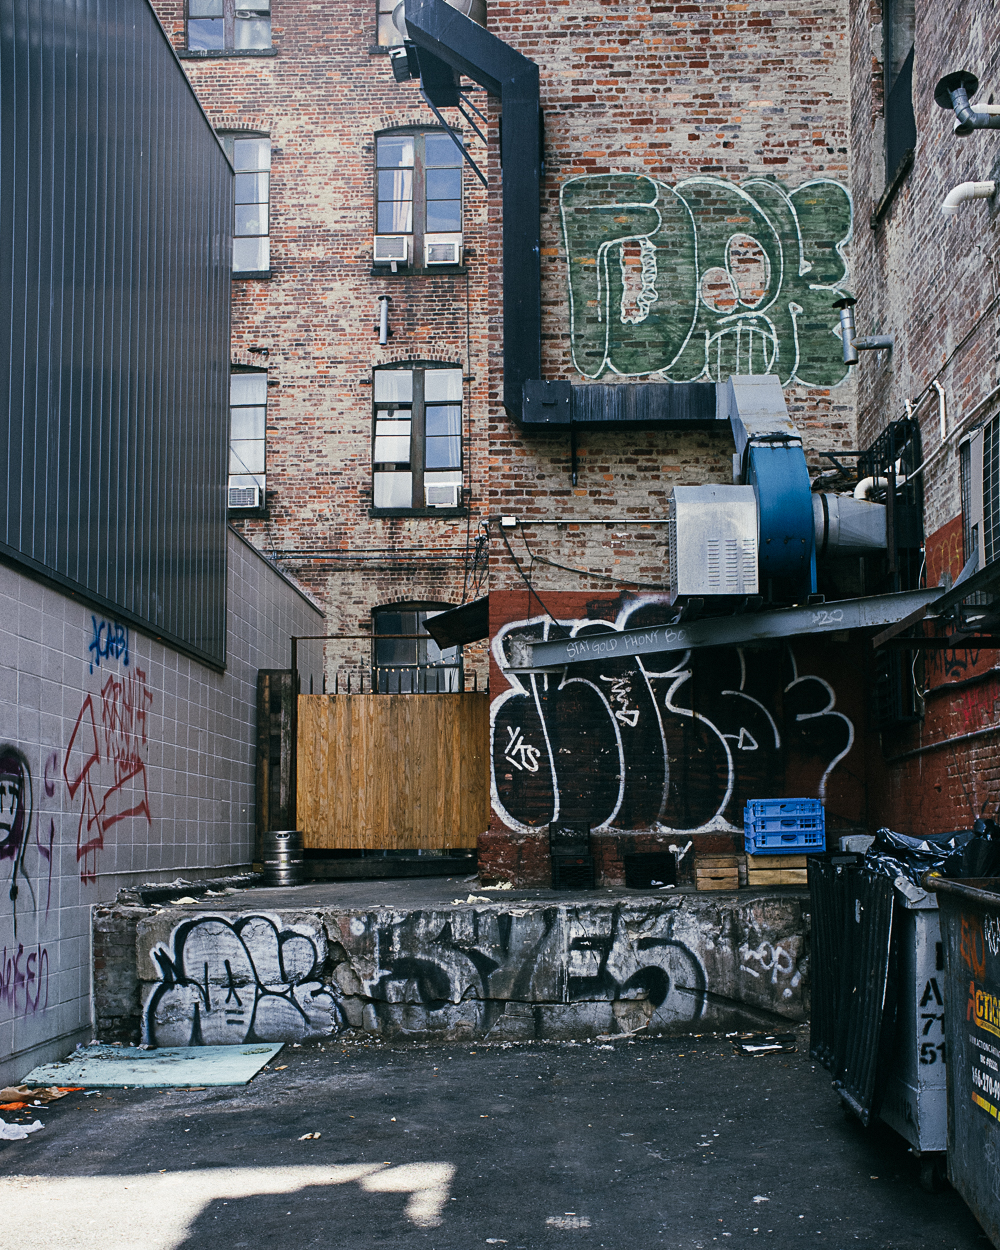 graffiti-alley-williamsburg-brooklyn-nyc.jpg